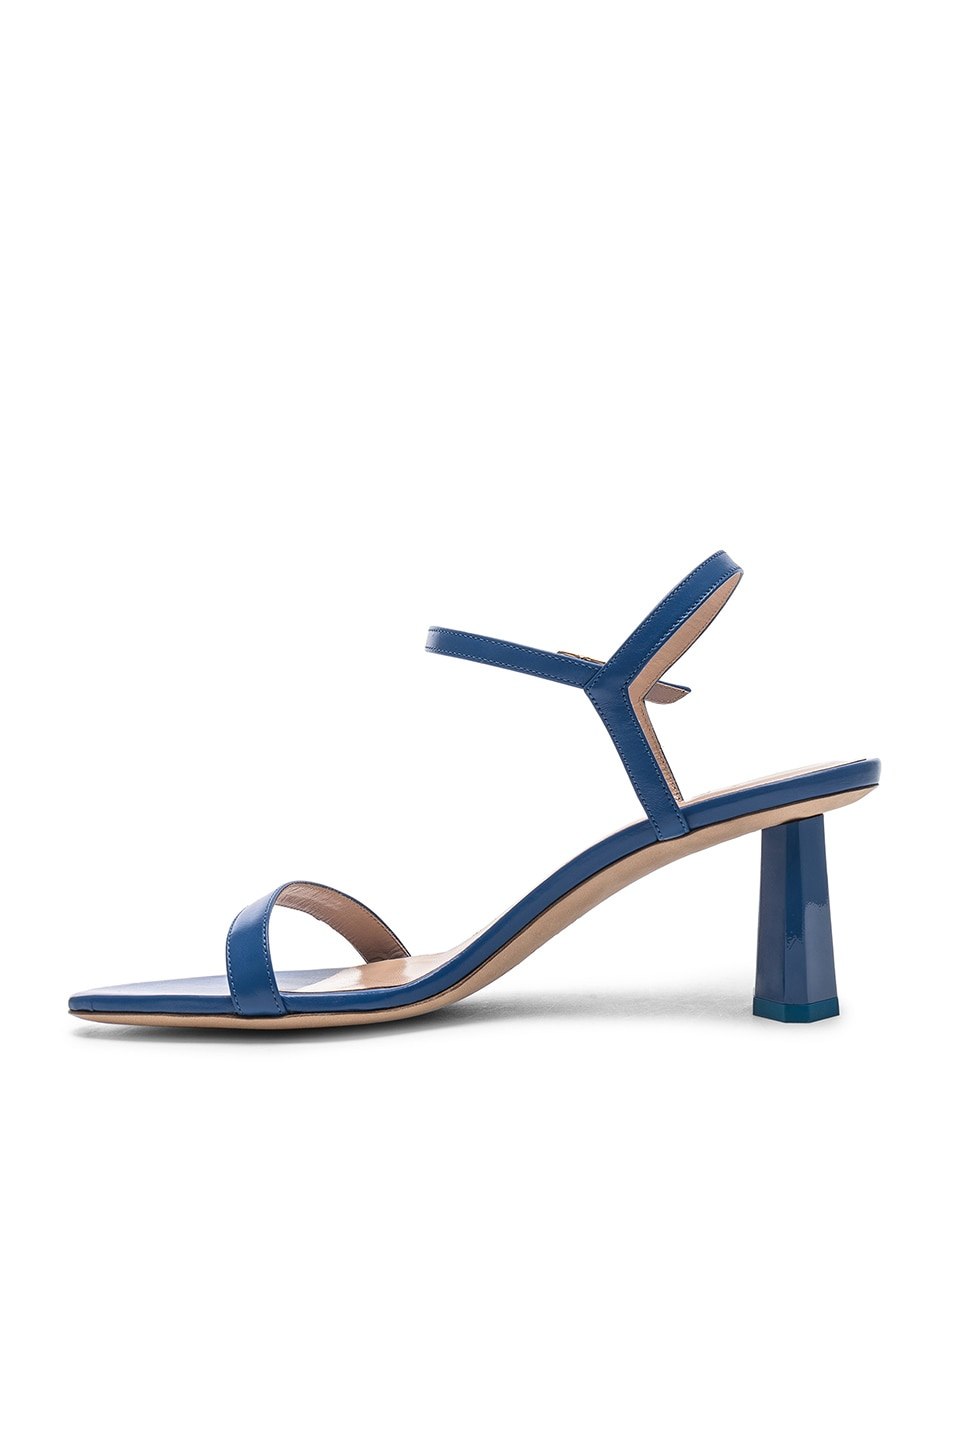 Image 5 of By Far Magnolia Sandal in Marine Blue Leather